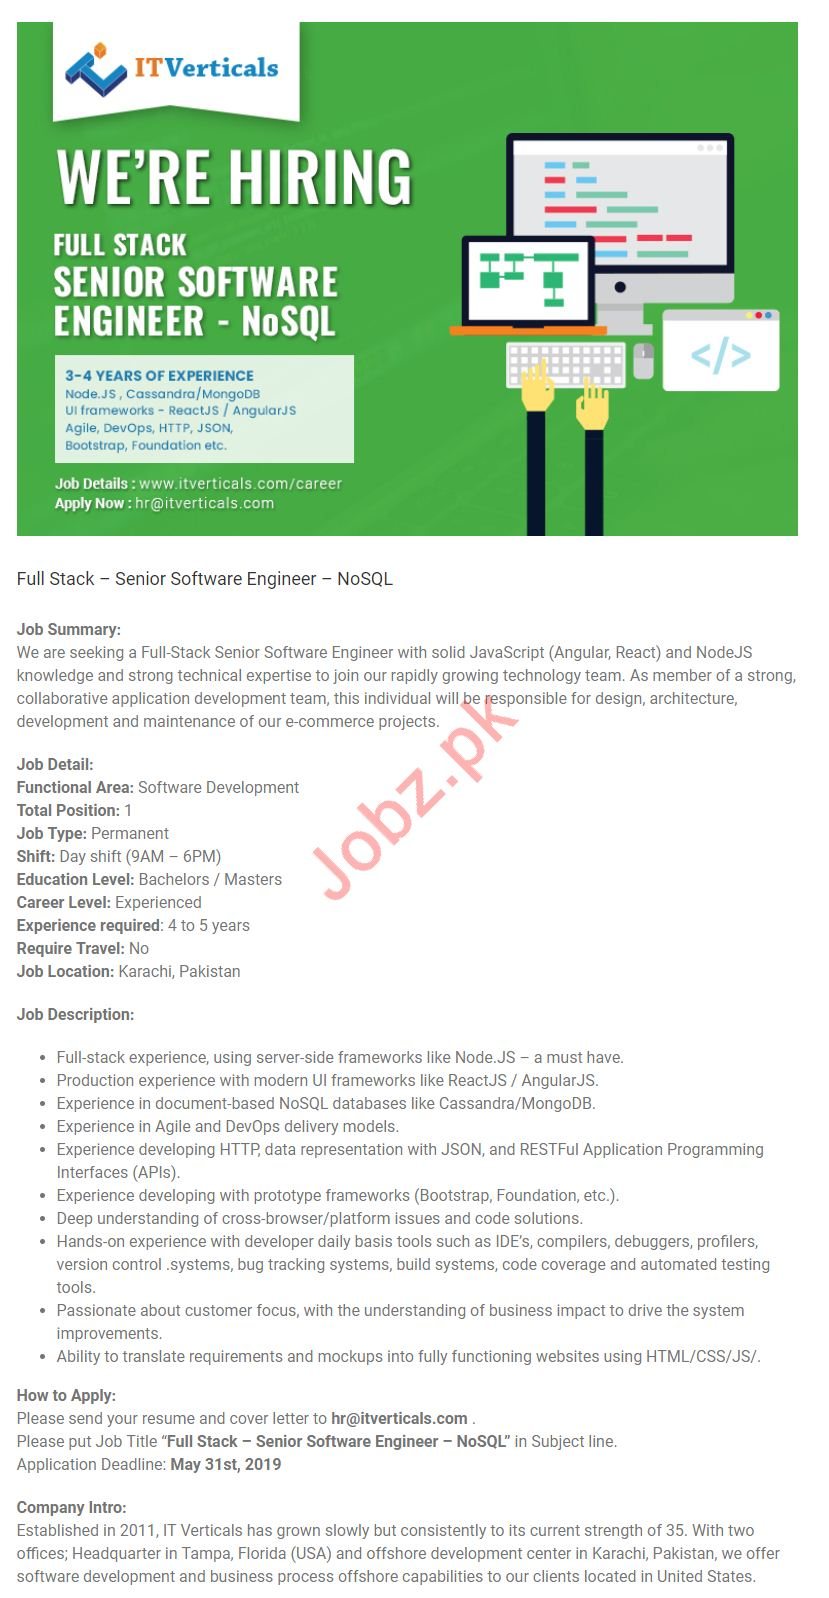 Full Stack Senior Software Engineer Job in Karachi